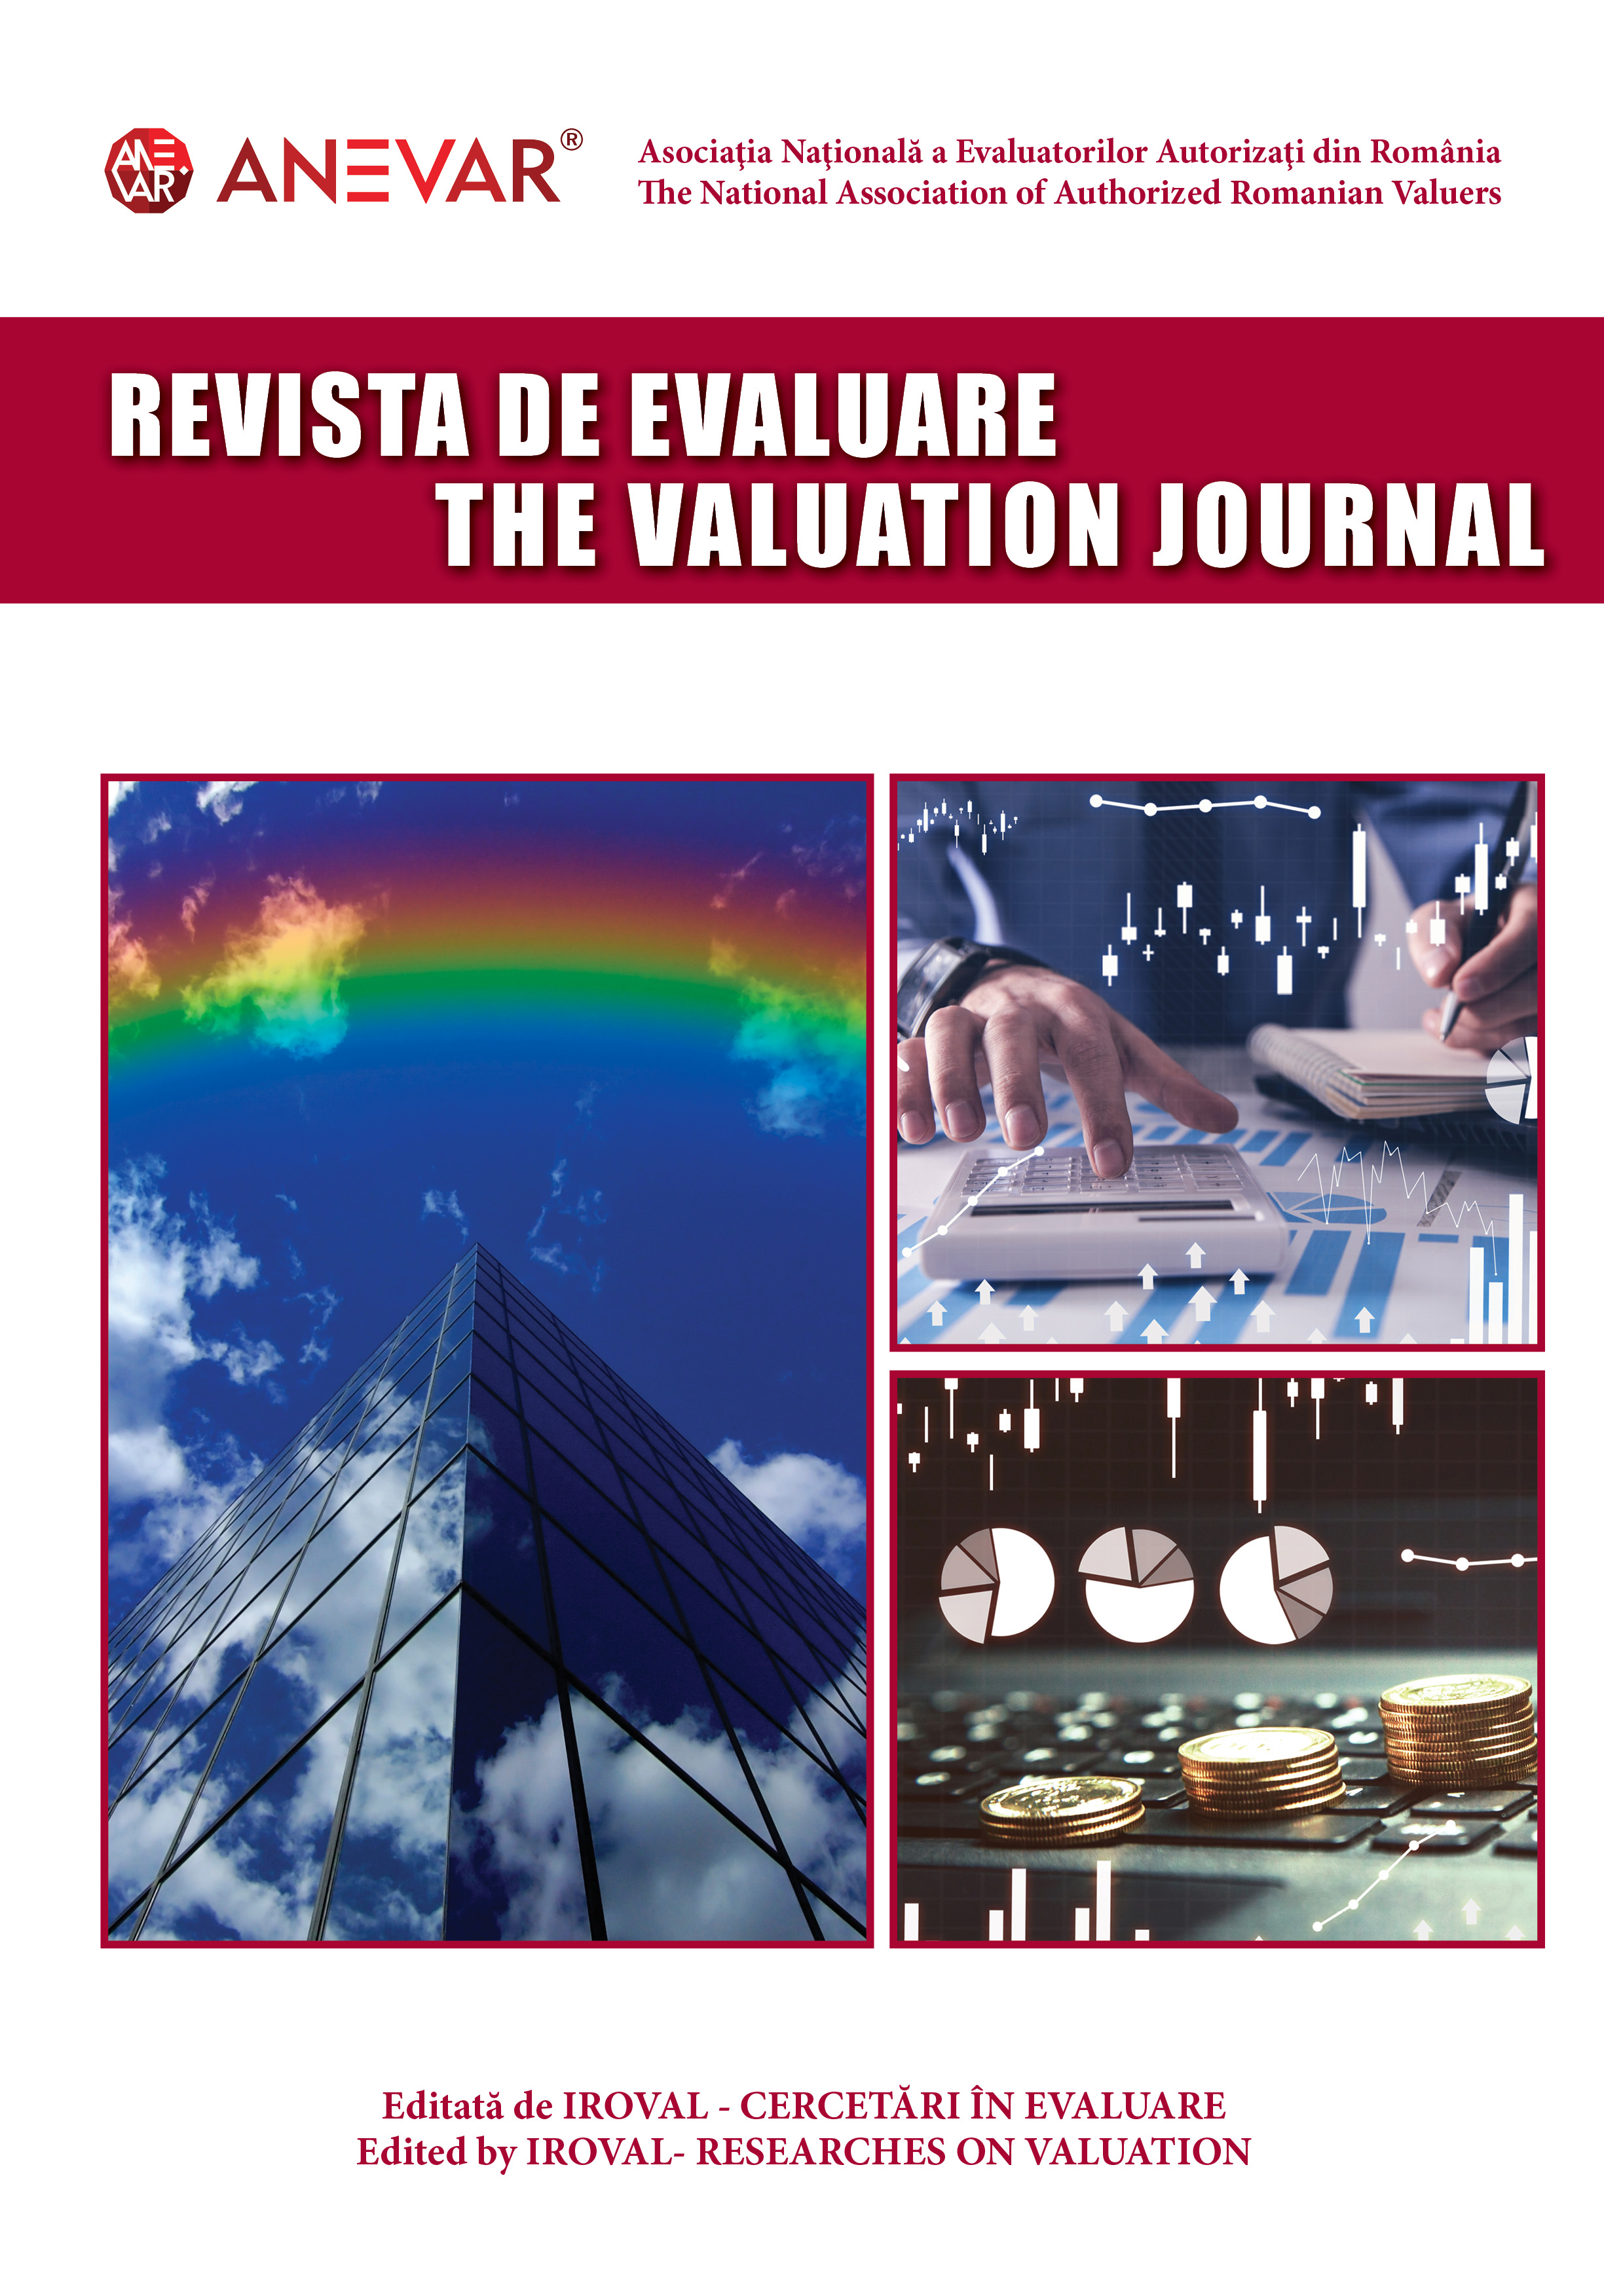 Call for papers pentru Revista de Evaluare/The Valuation Journal (ISSN 2668-9693, ISSN-L 1842-3787)